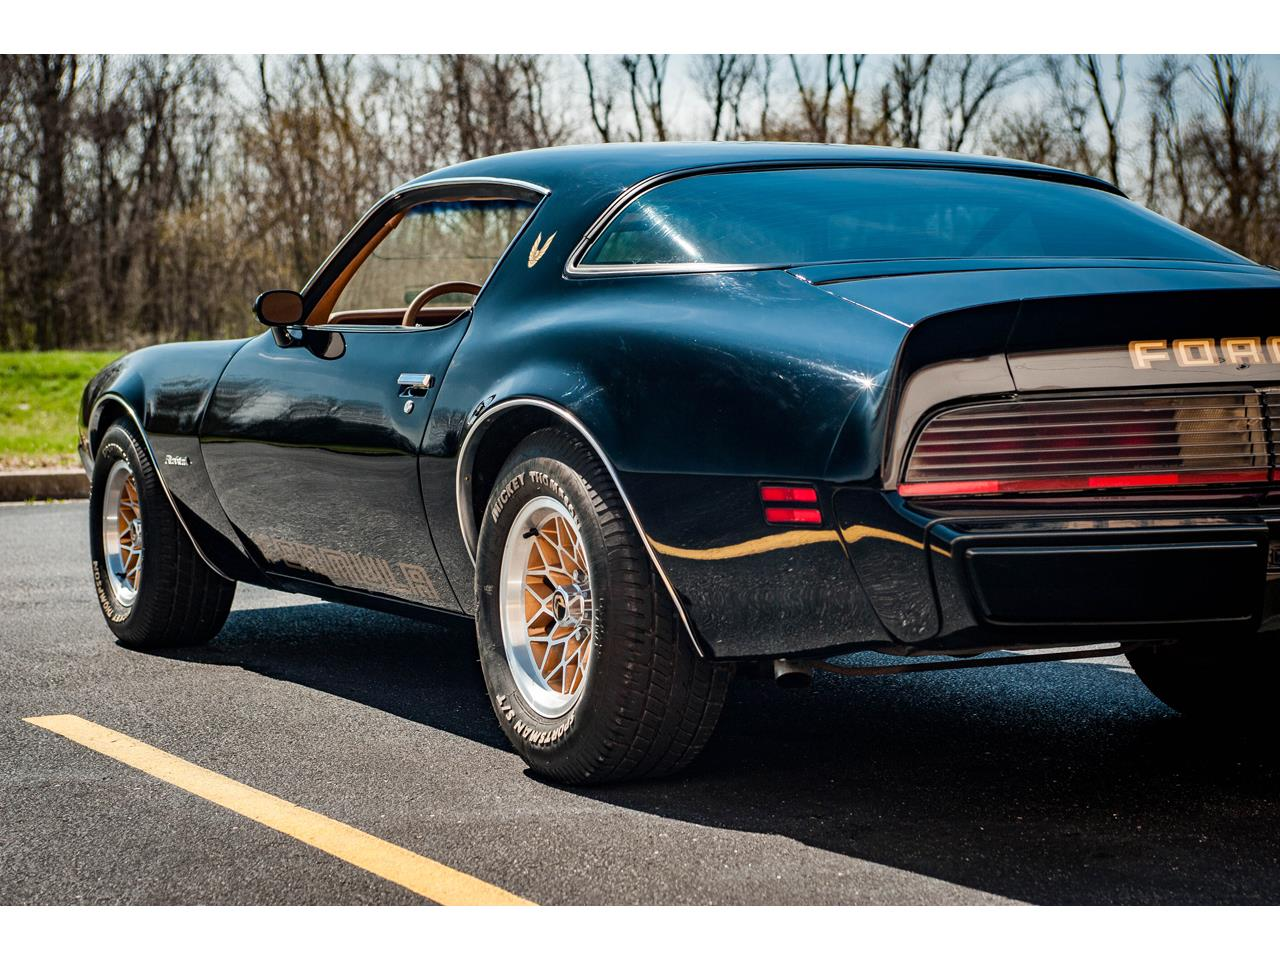 Large Picture of 1979 Firebird located in Illinois - $36,500.00 Offered by Gateway Classic Cars - St. Louis - QB8A